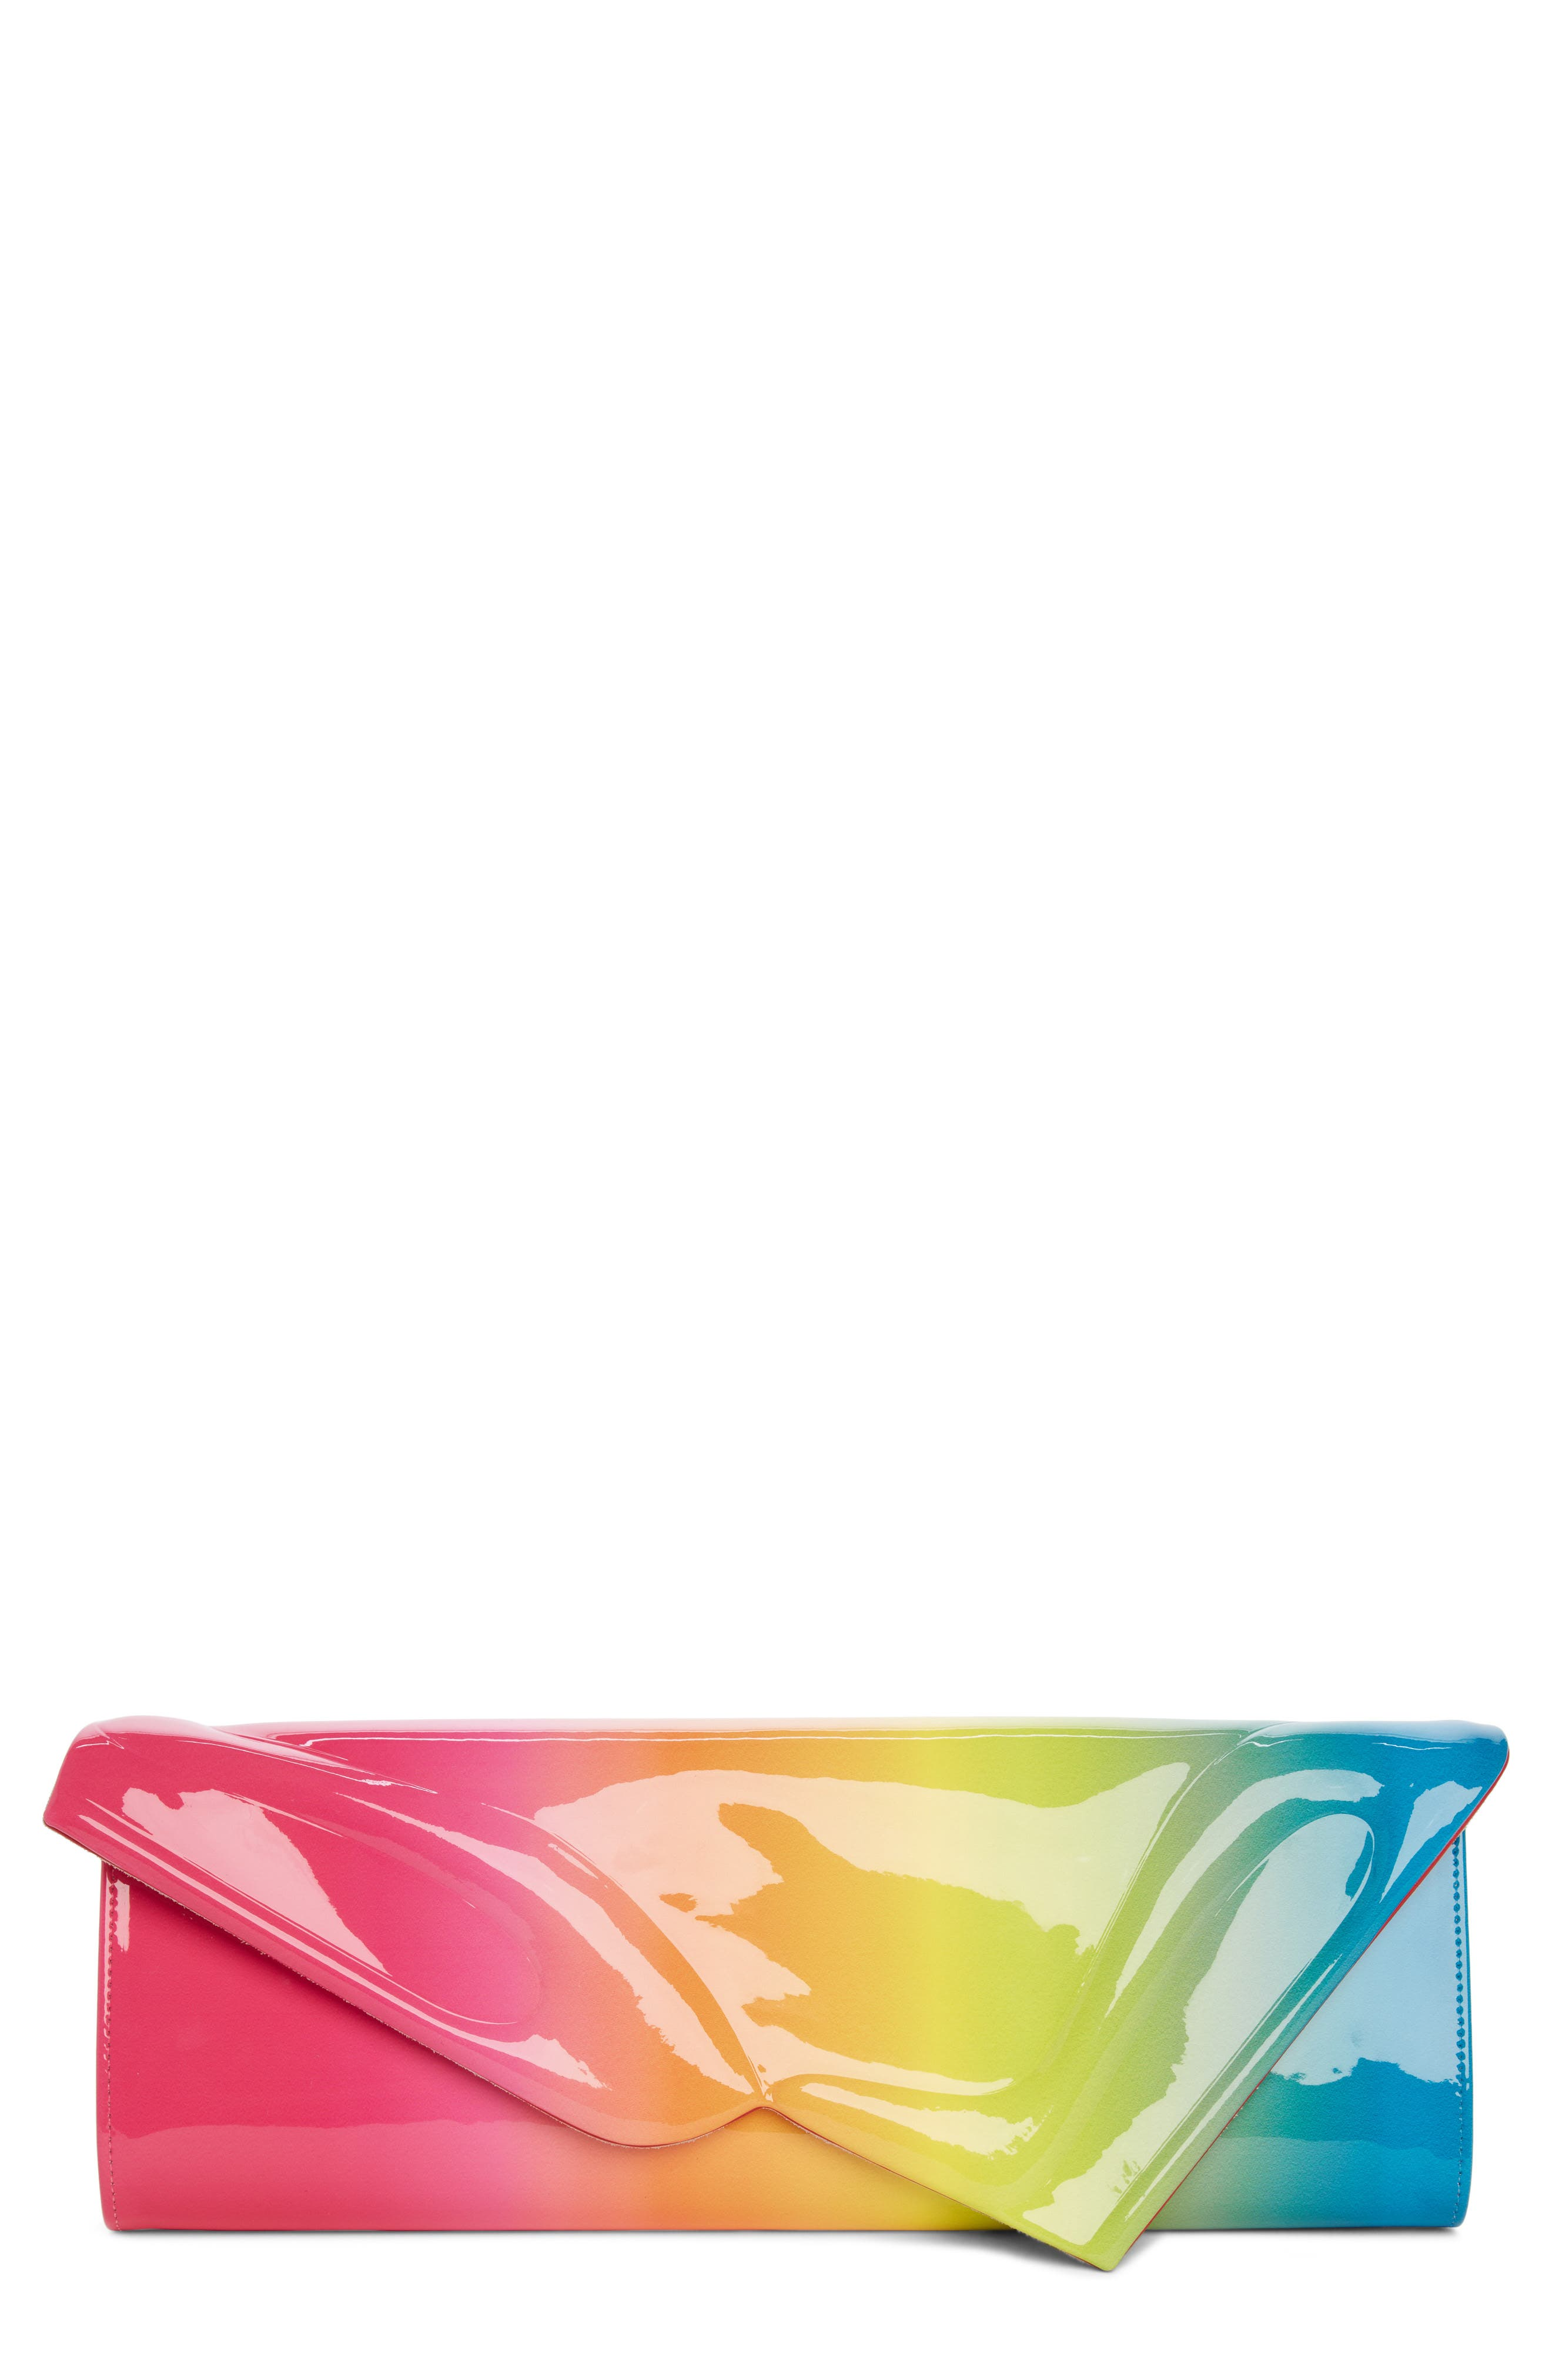 54f08668ddcb Christian Louboutin So Kate Rainbow Ombre Patent Leather Clutch - Pink In  Pink Multi